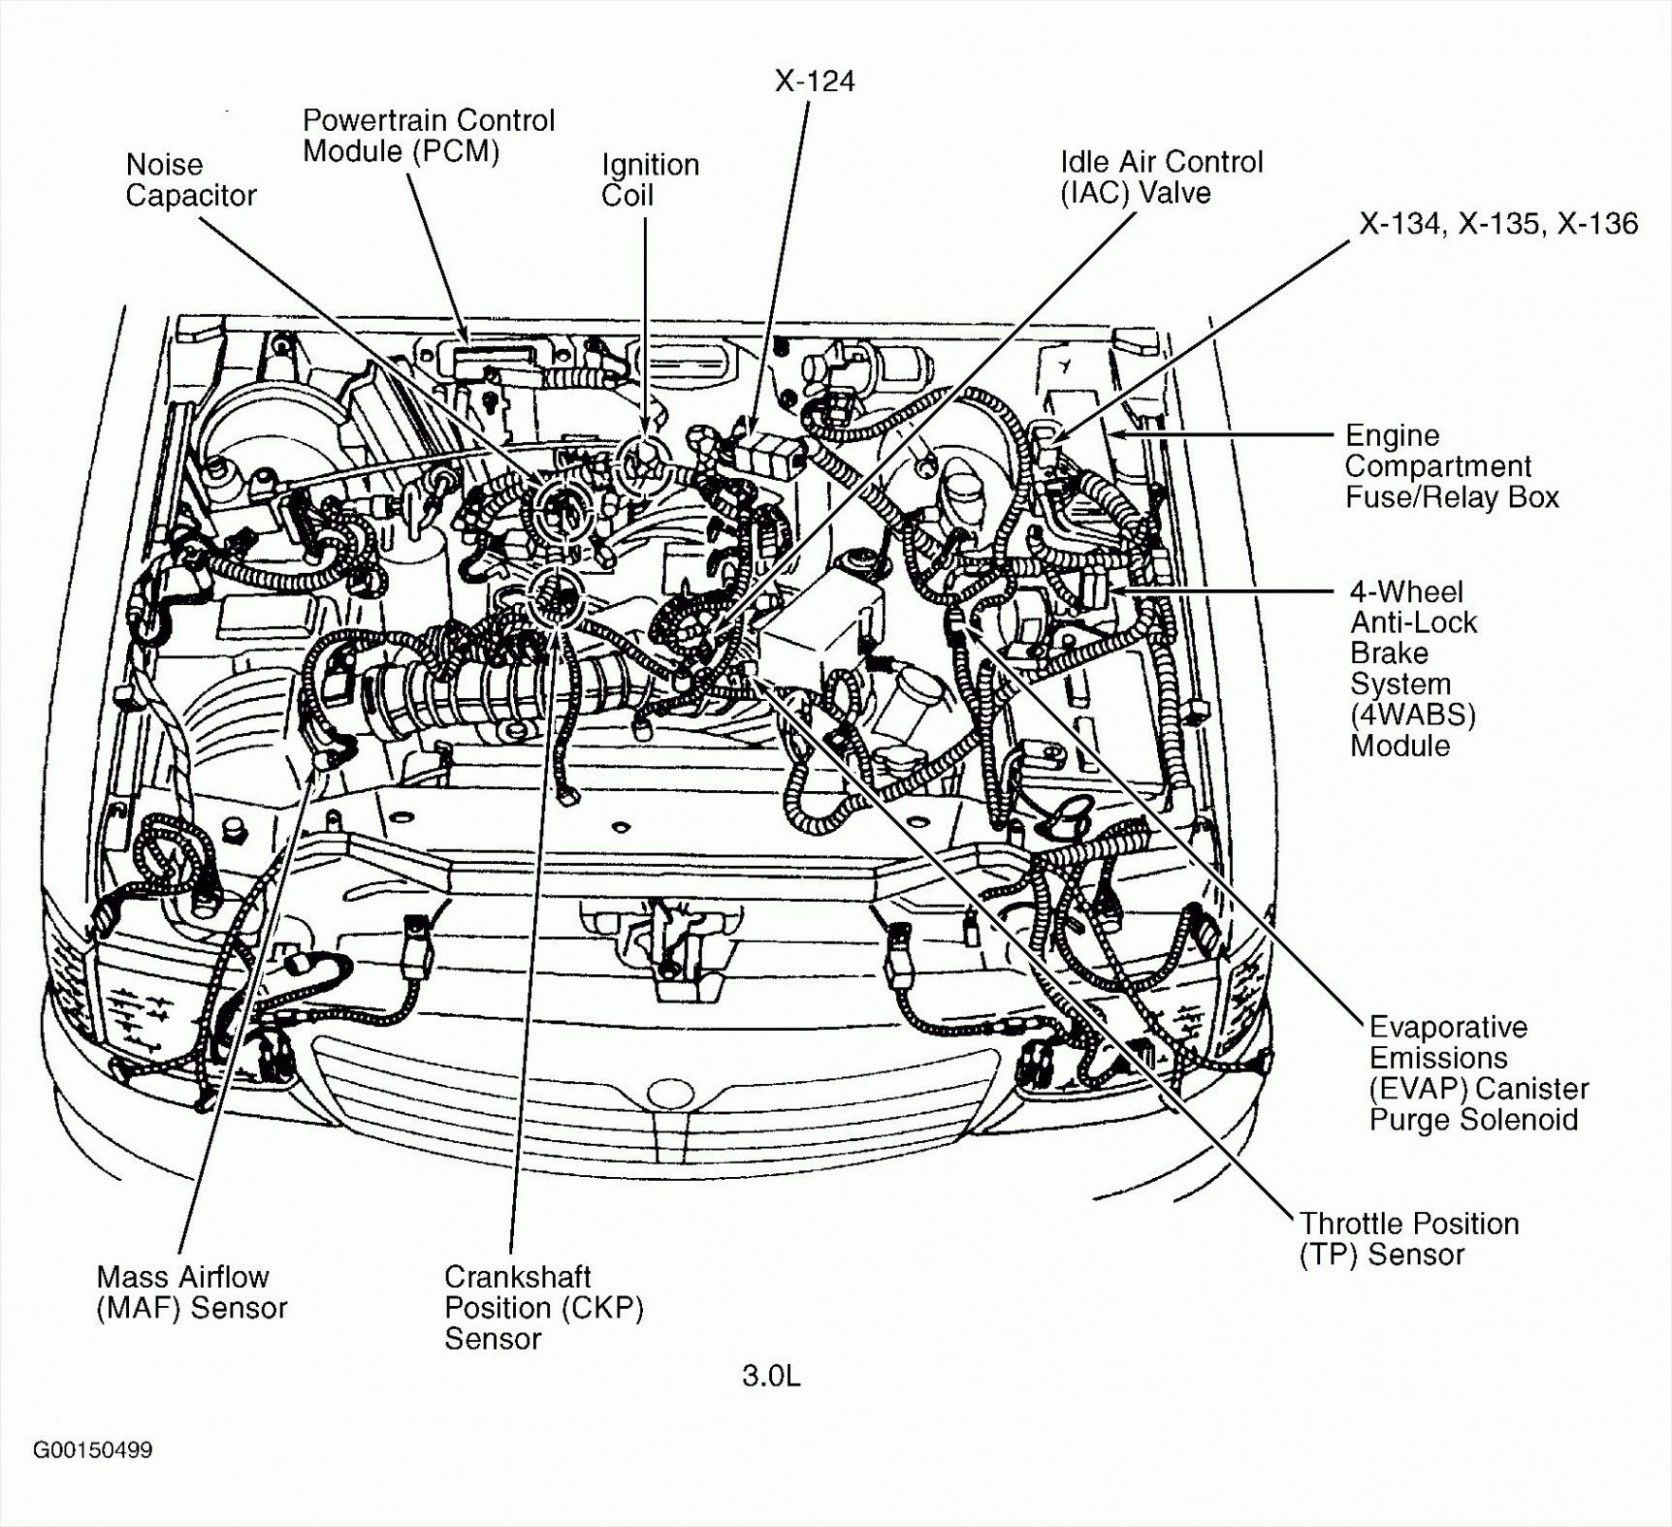 Vectra Engine Bay Diagram Di 2020 Taurus Ford Diagram